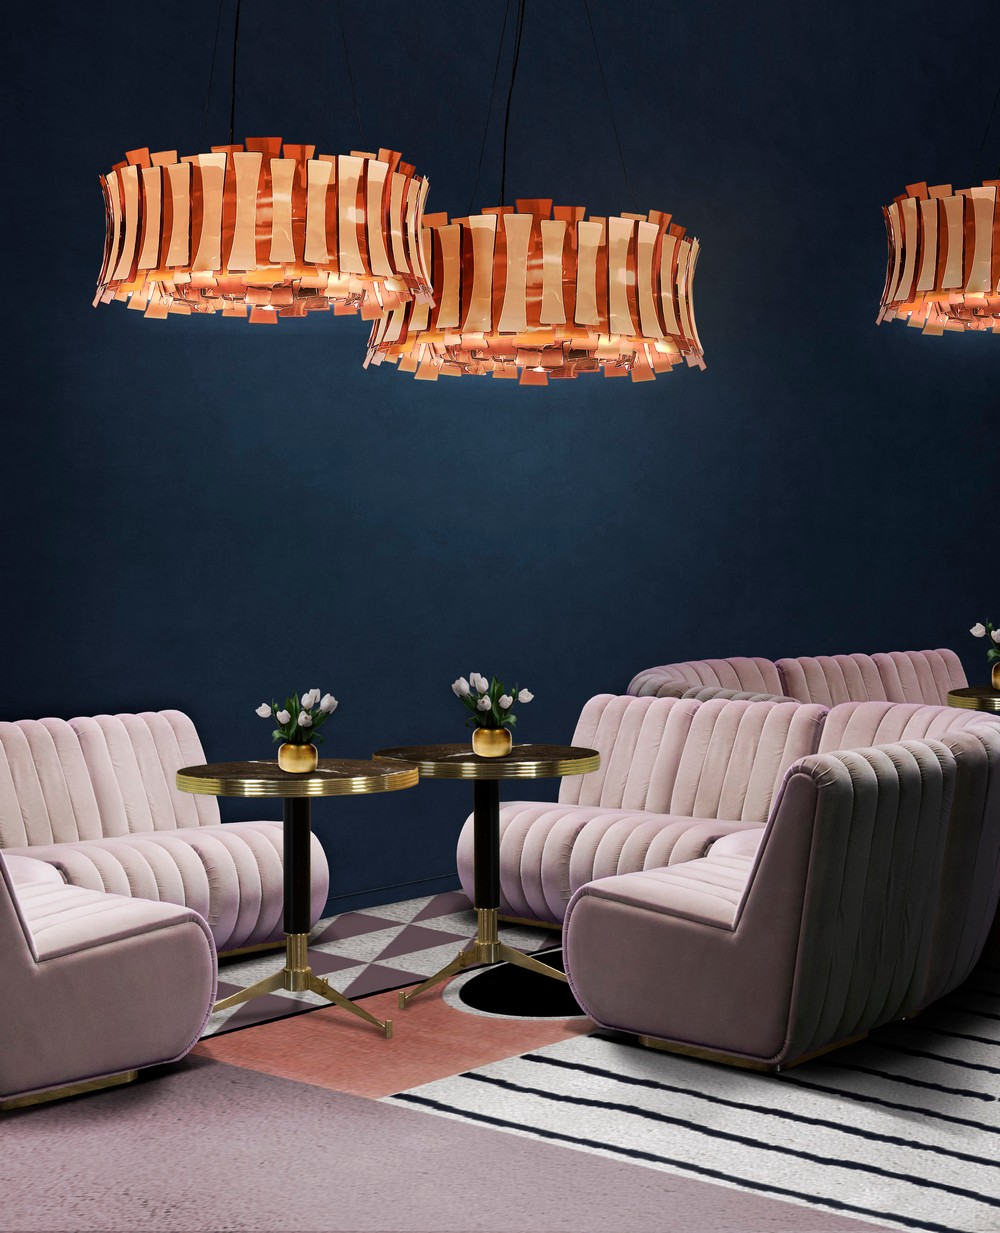 7 Dining Room Chandeliers That Will Spark A Luxury Atmosphere dining room chandeliers 7 Dining Room Chandeliers That Will Spark A Luxury Atmosphere ambience 222 HR